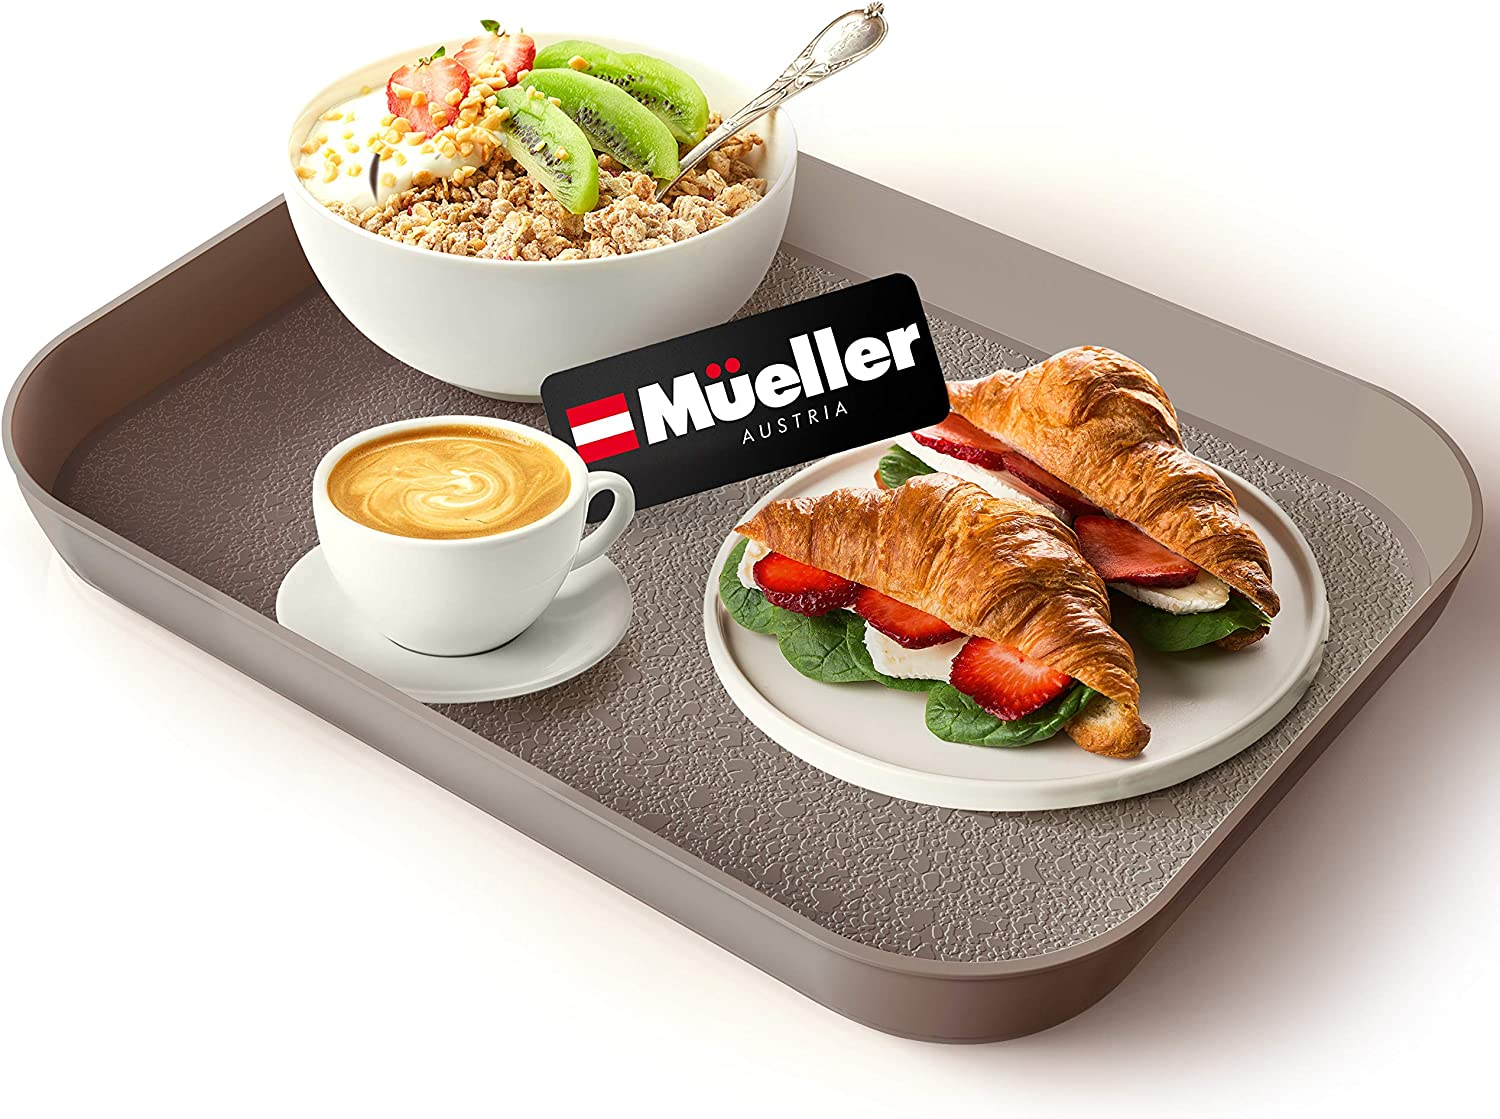 Mueller Reversible Serving Tray, European Made Platter, 2in1, Rectangular Non-Slip Tray, Shatter-Proof, Non-Toxic, for Coffee Table, Kitchen, Outdoors, Dishwasher Safe, Mocha